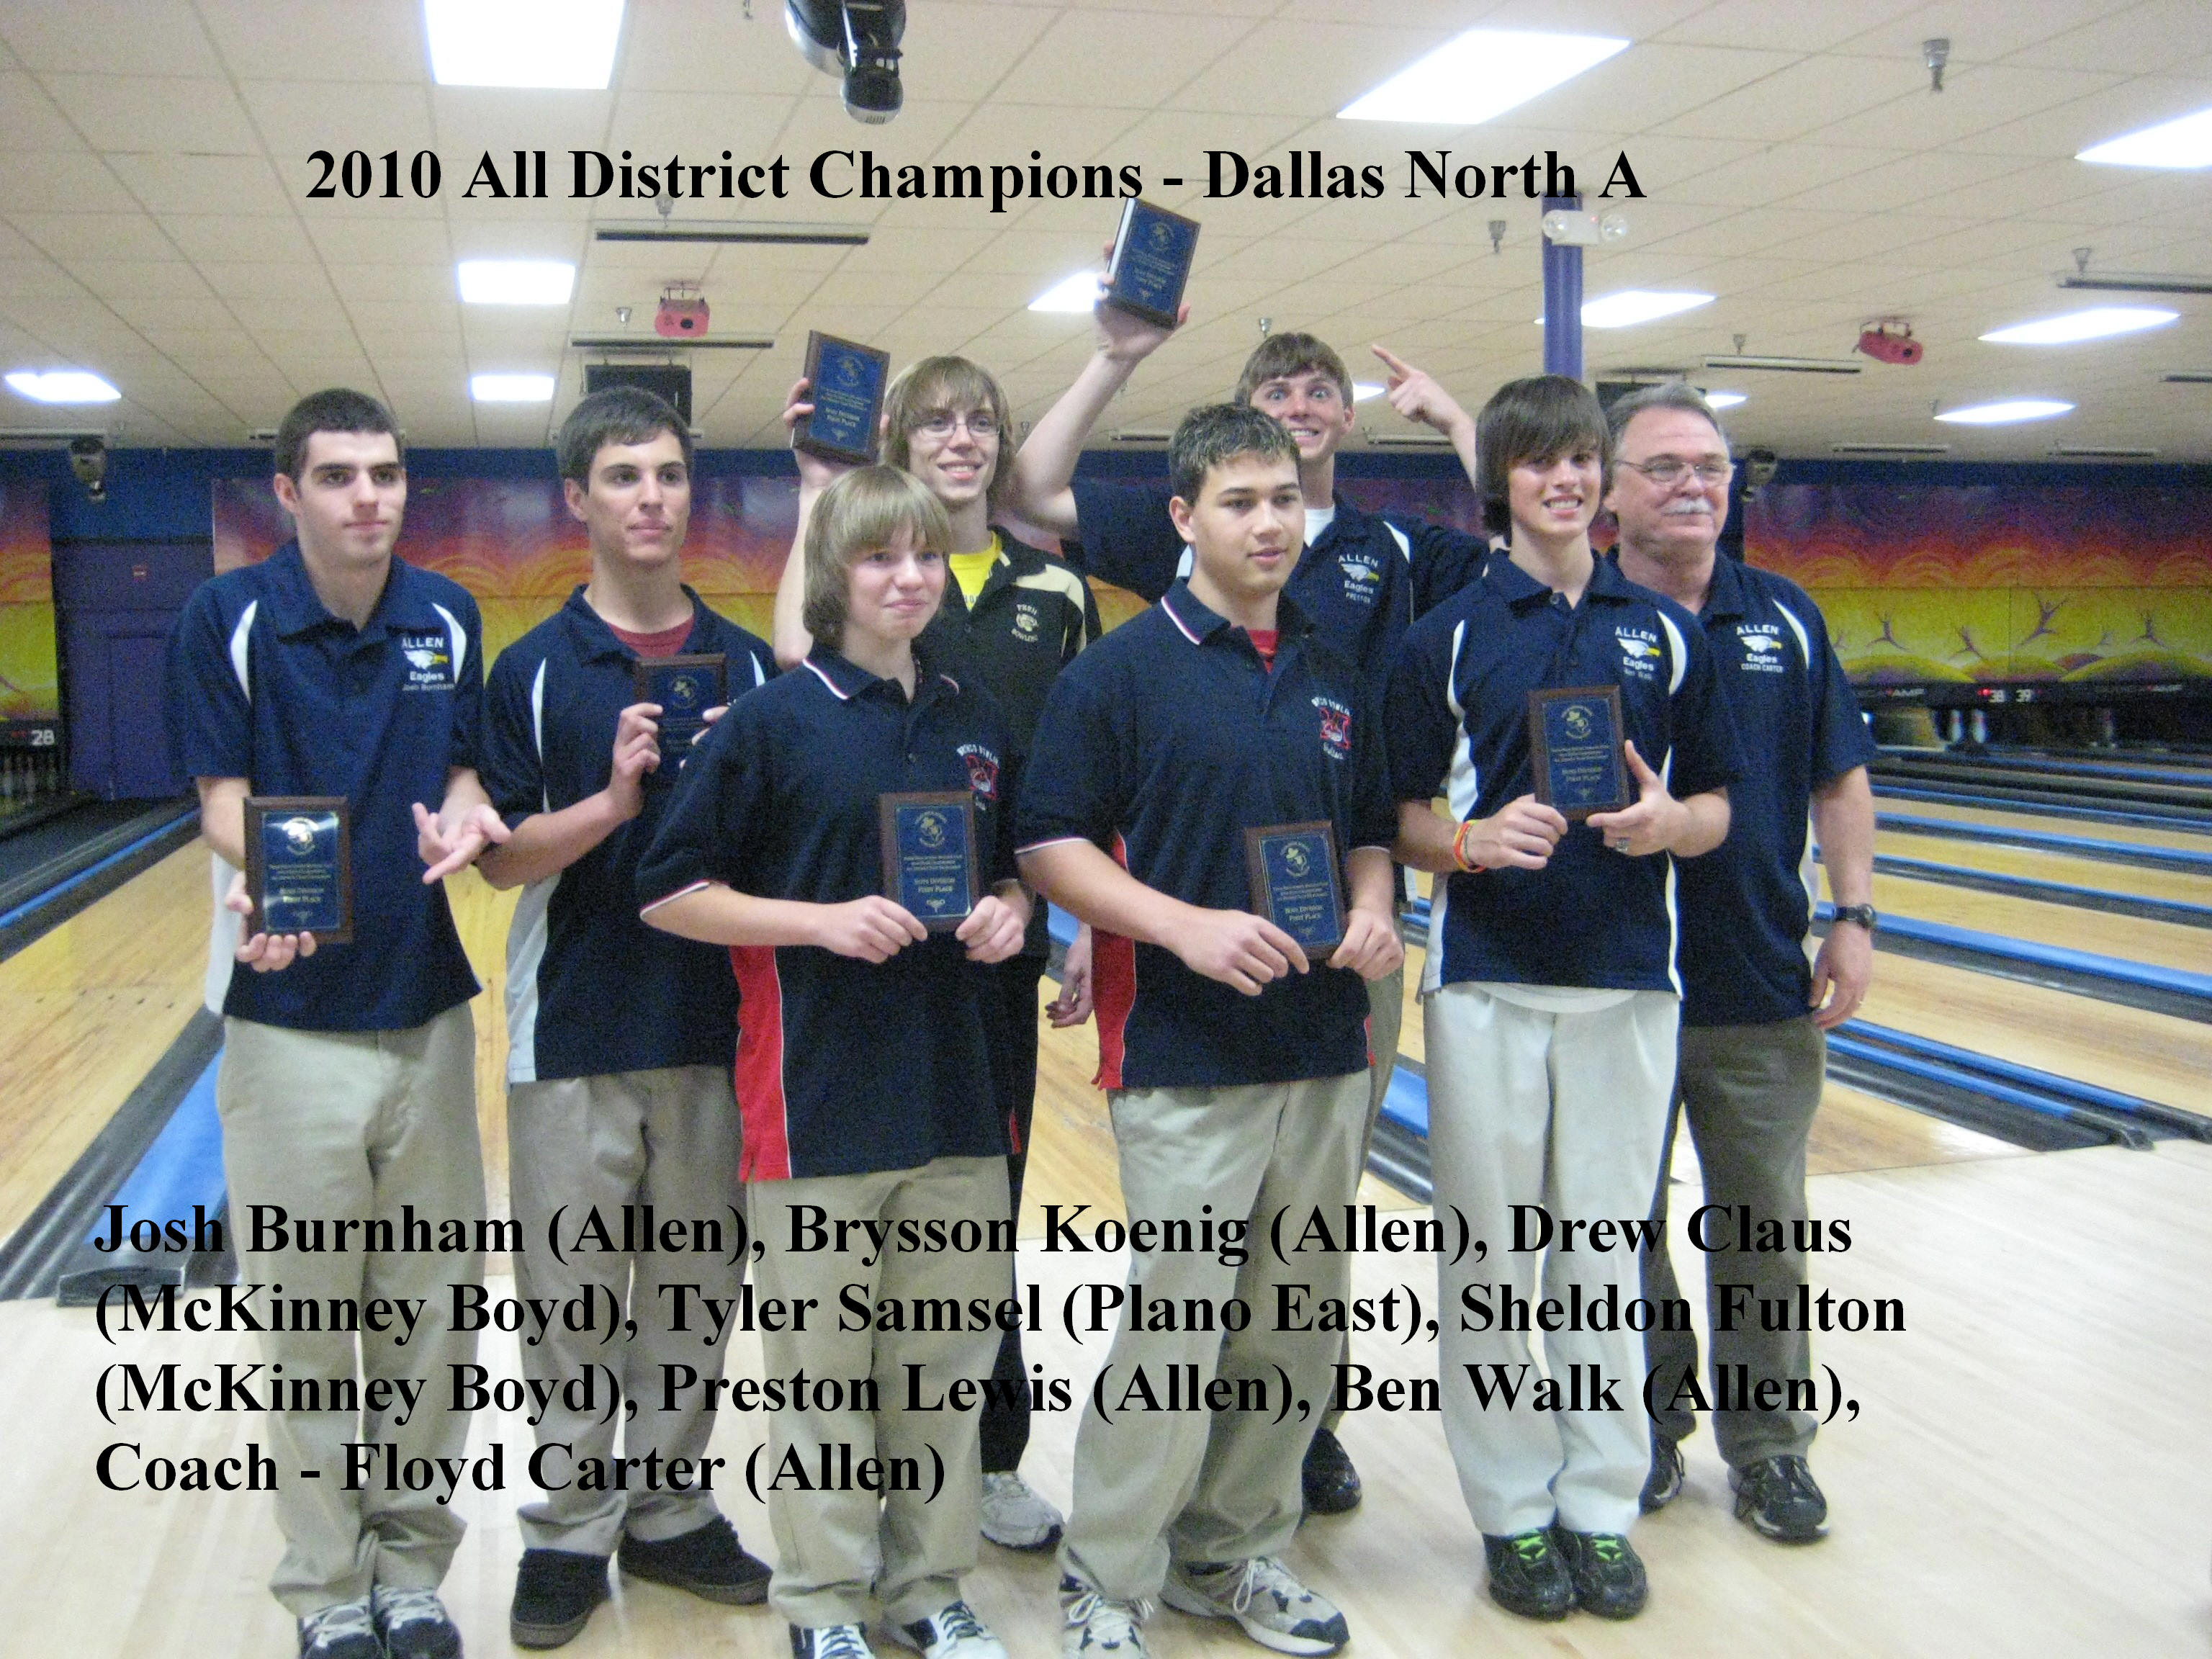 2010 Boys All District